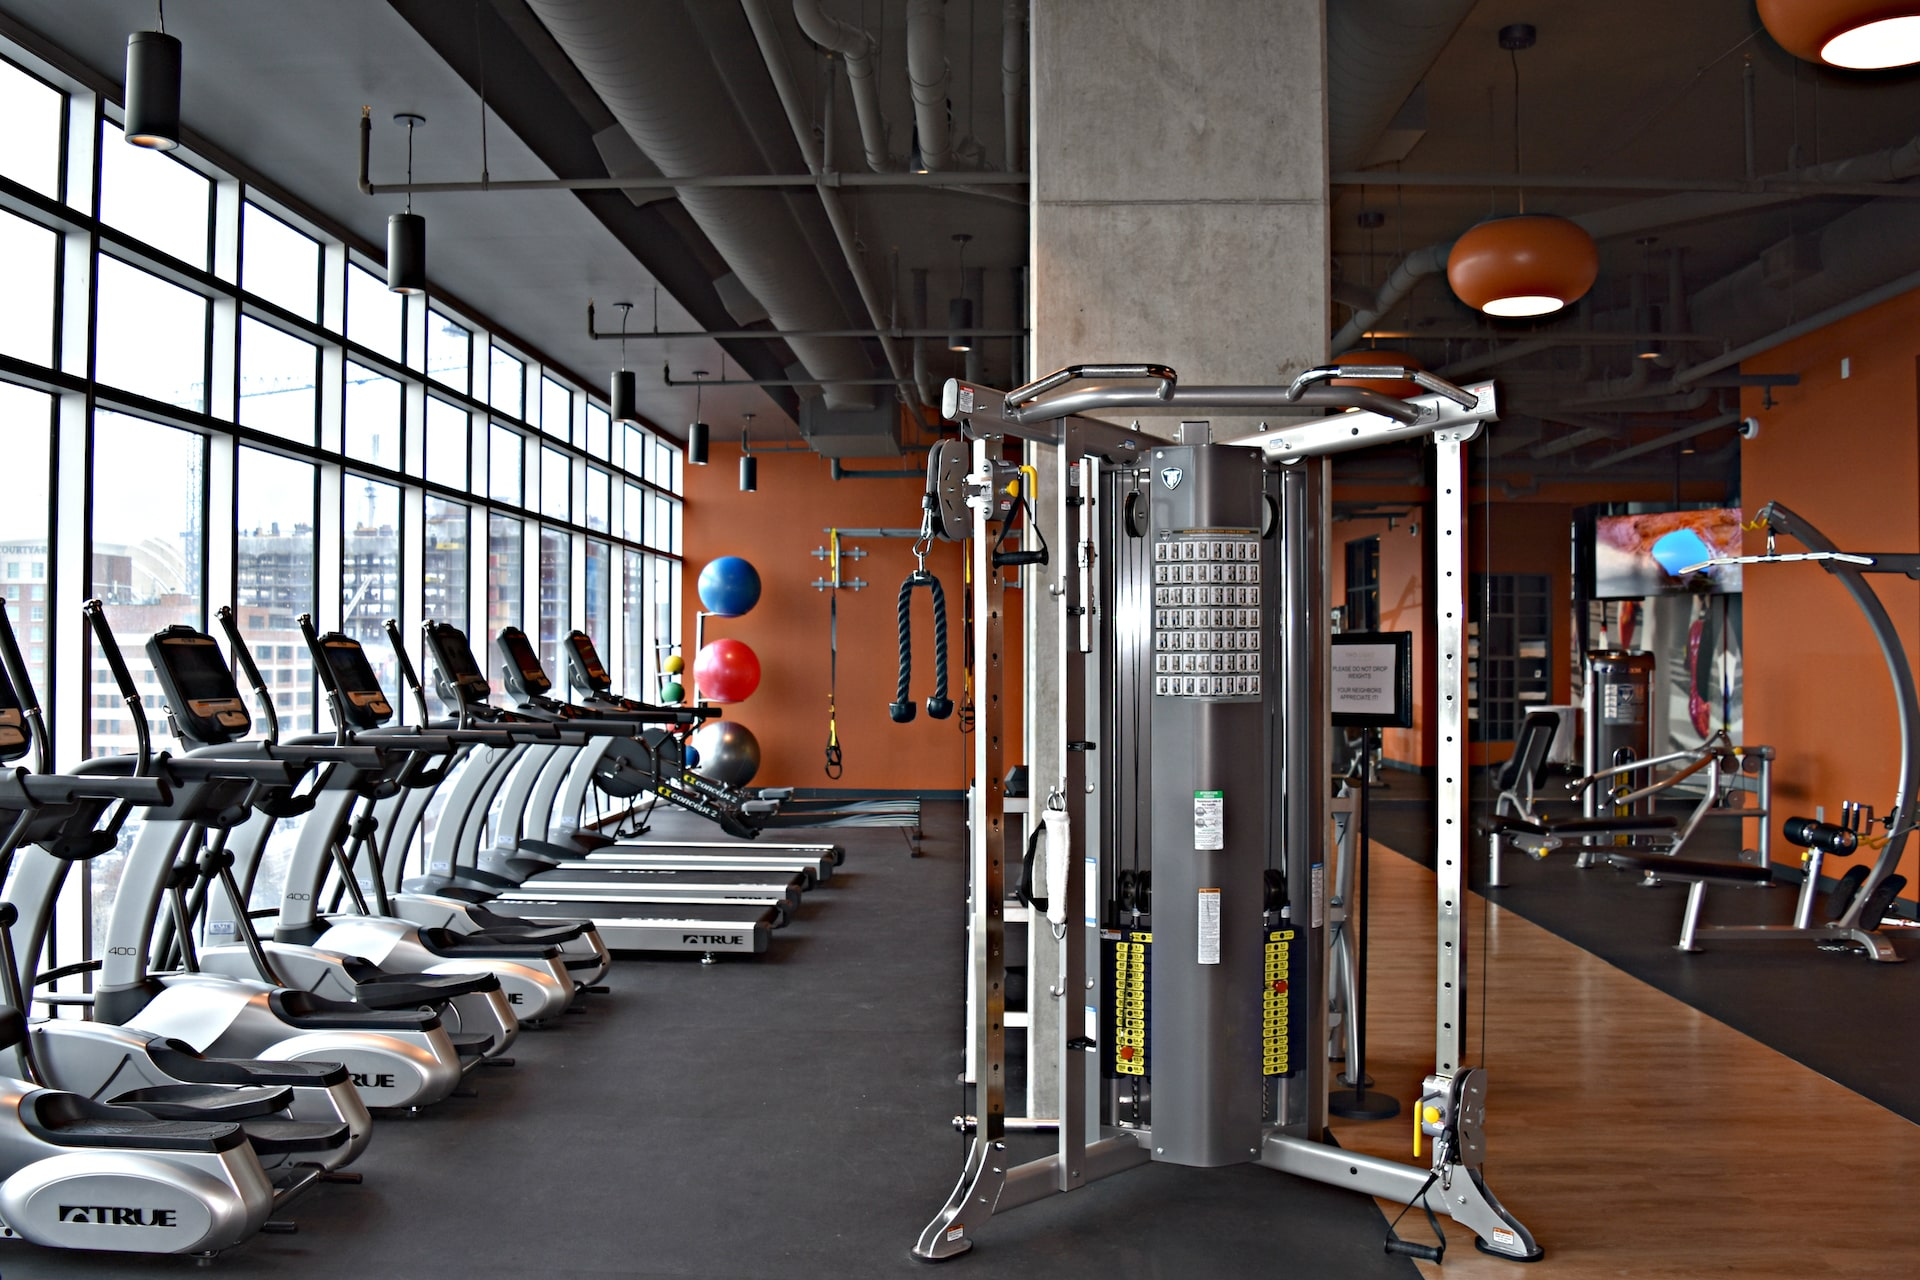 Commercial Gym Install - Elite Exercise Equipment - Kansas City, Missouri